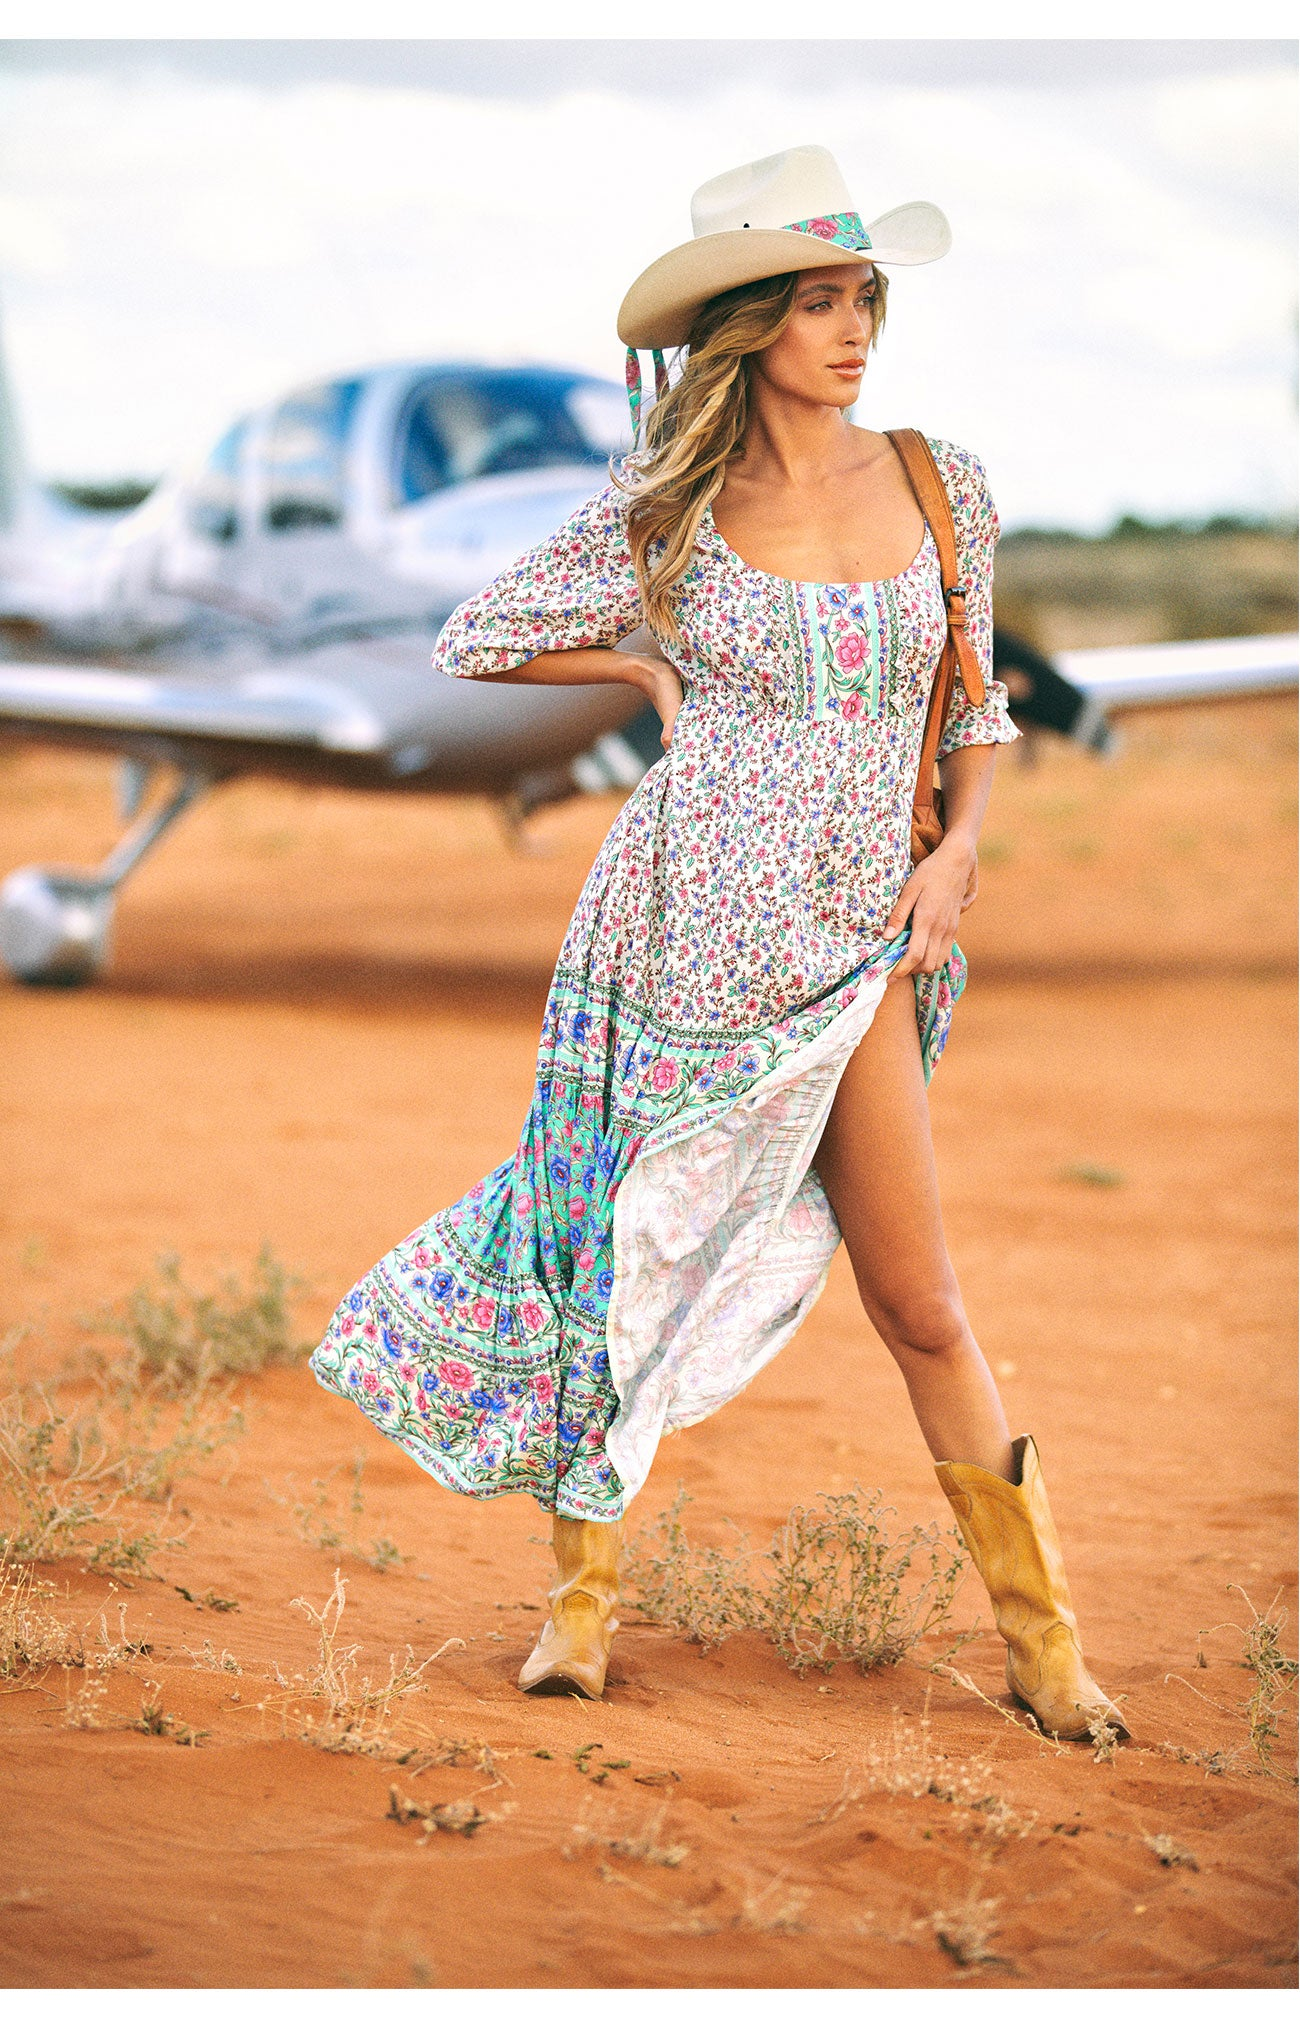 Travelling NSW in style, Kasey wears her new eco Arnhem